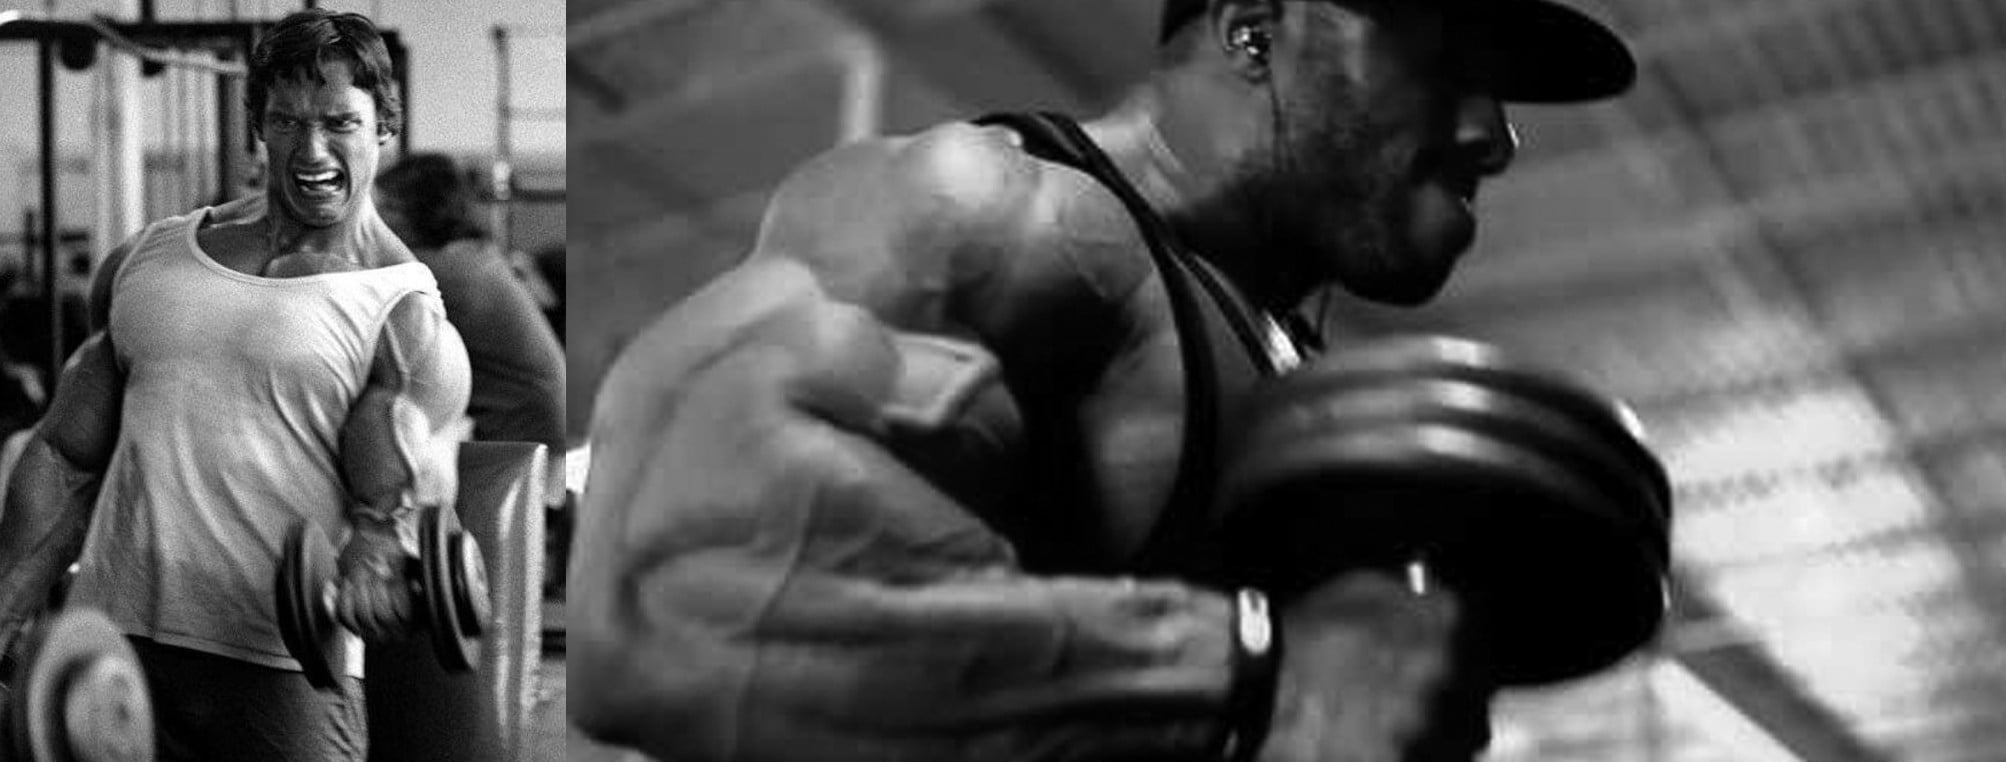 Hammer Curls vs Bicep Curls Build Bigger Arms Quickly Featured image